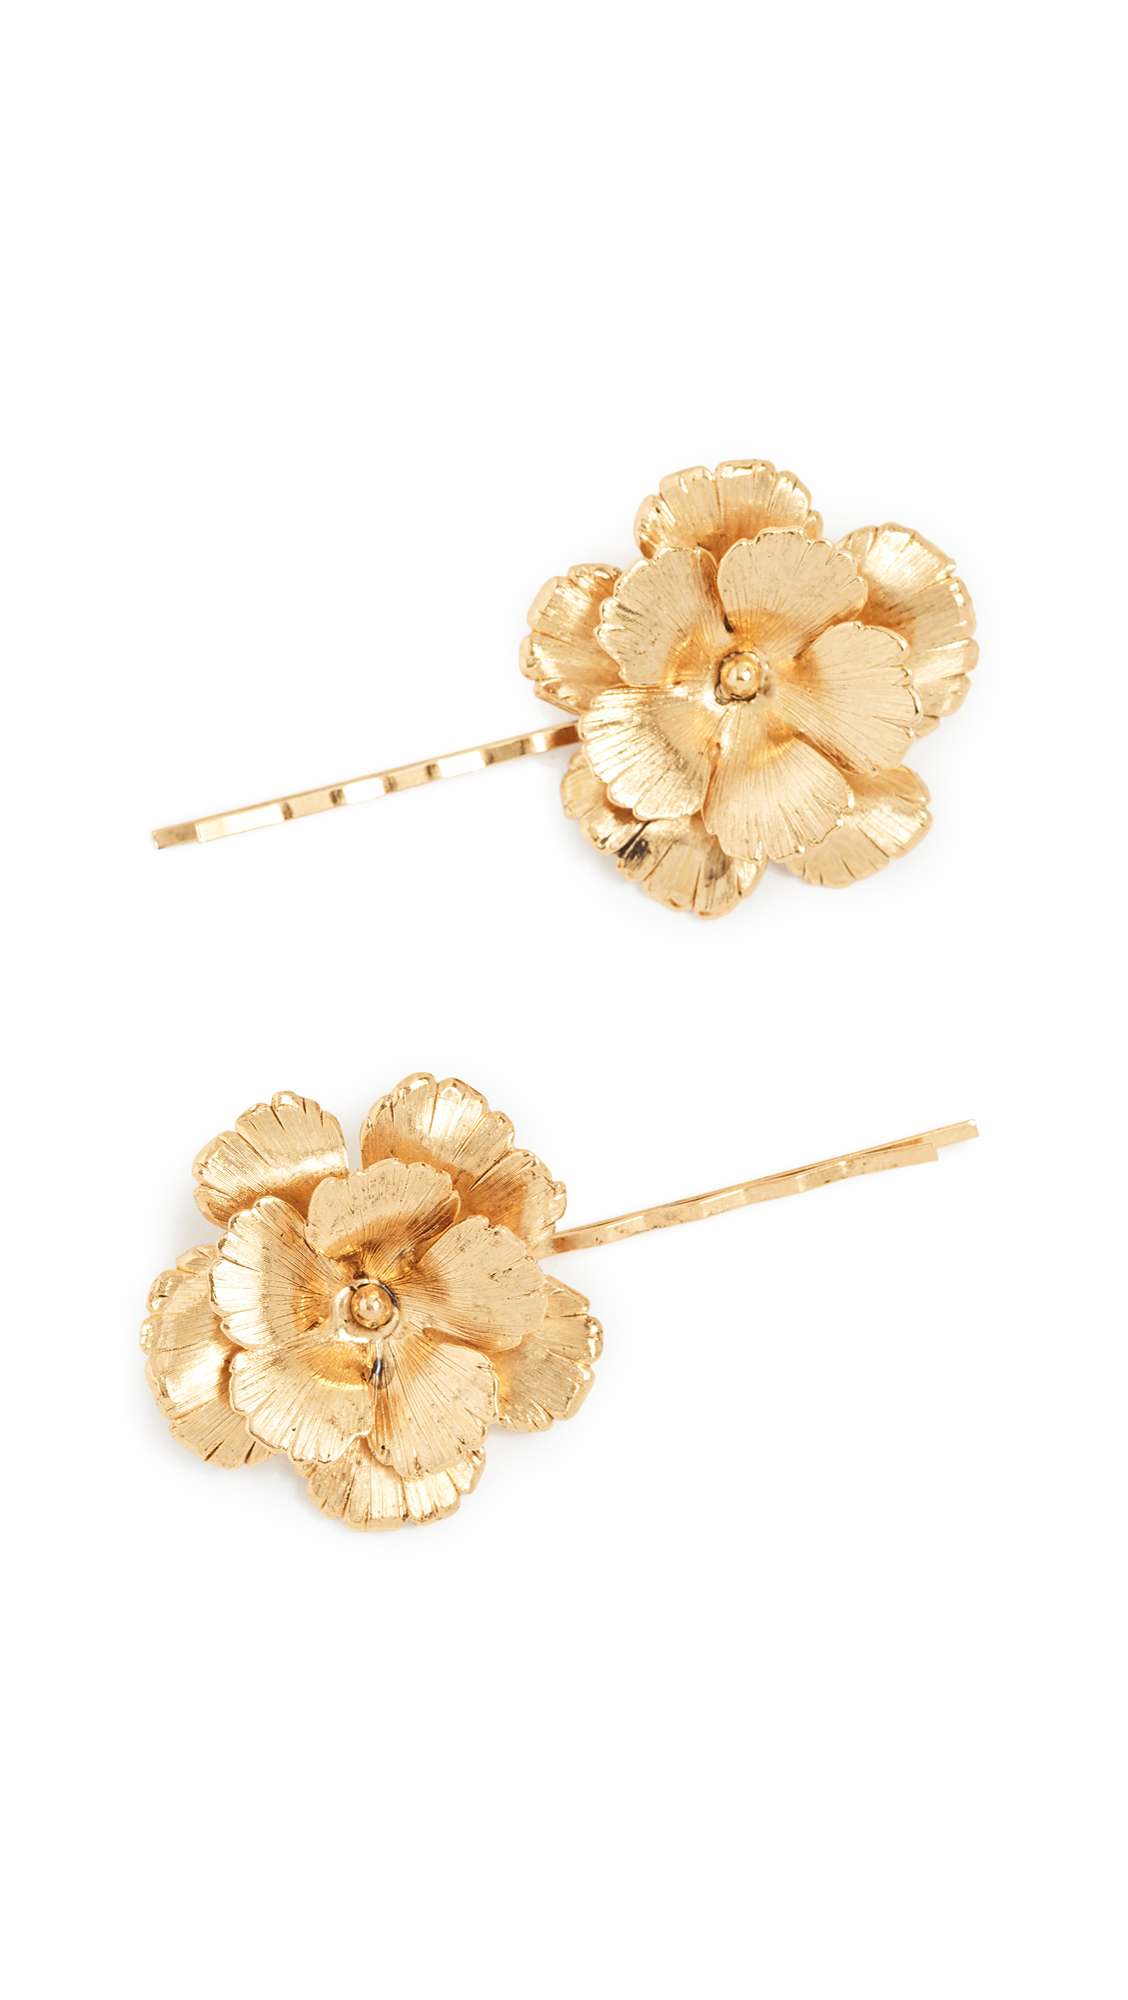 Poppy Floral Bobby Pins, Set Of 2, Yellow Gold